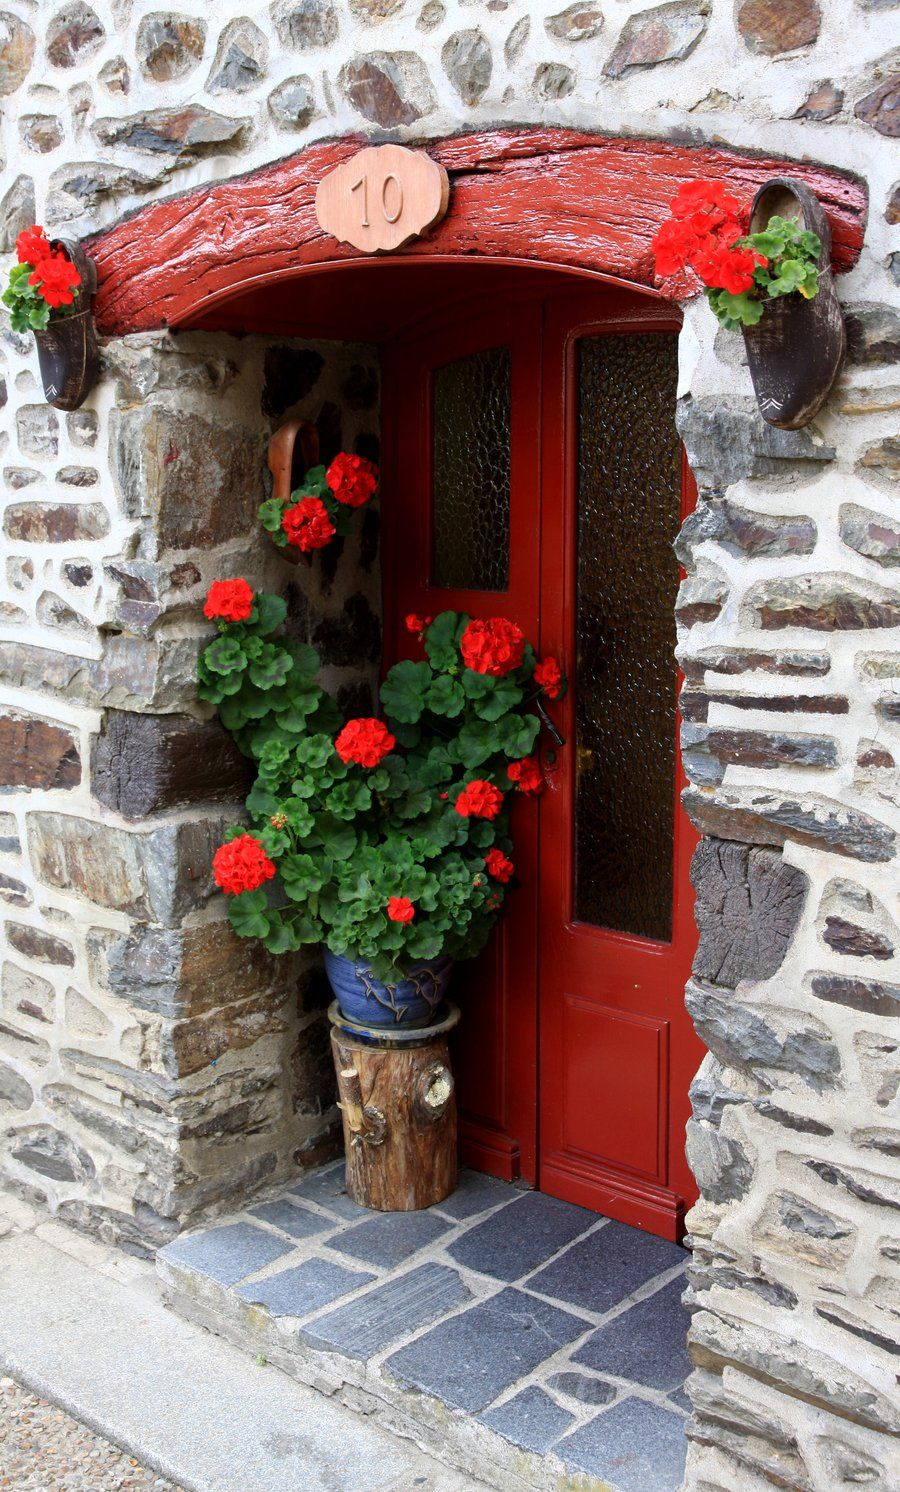 A door in the medieval town of Fougere Brittany ~ France...love the red door with the red geraniums